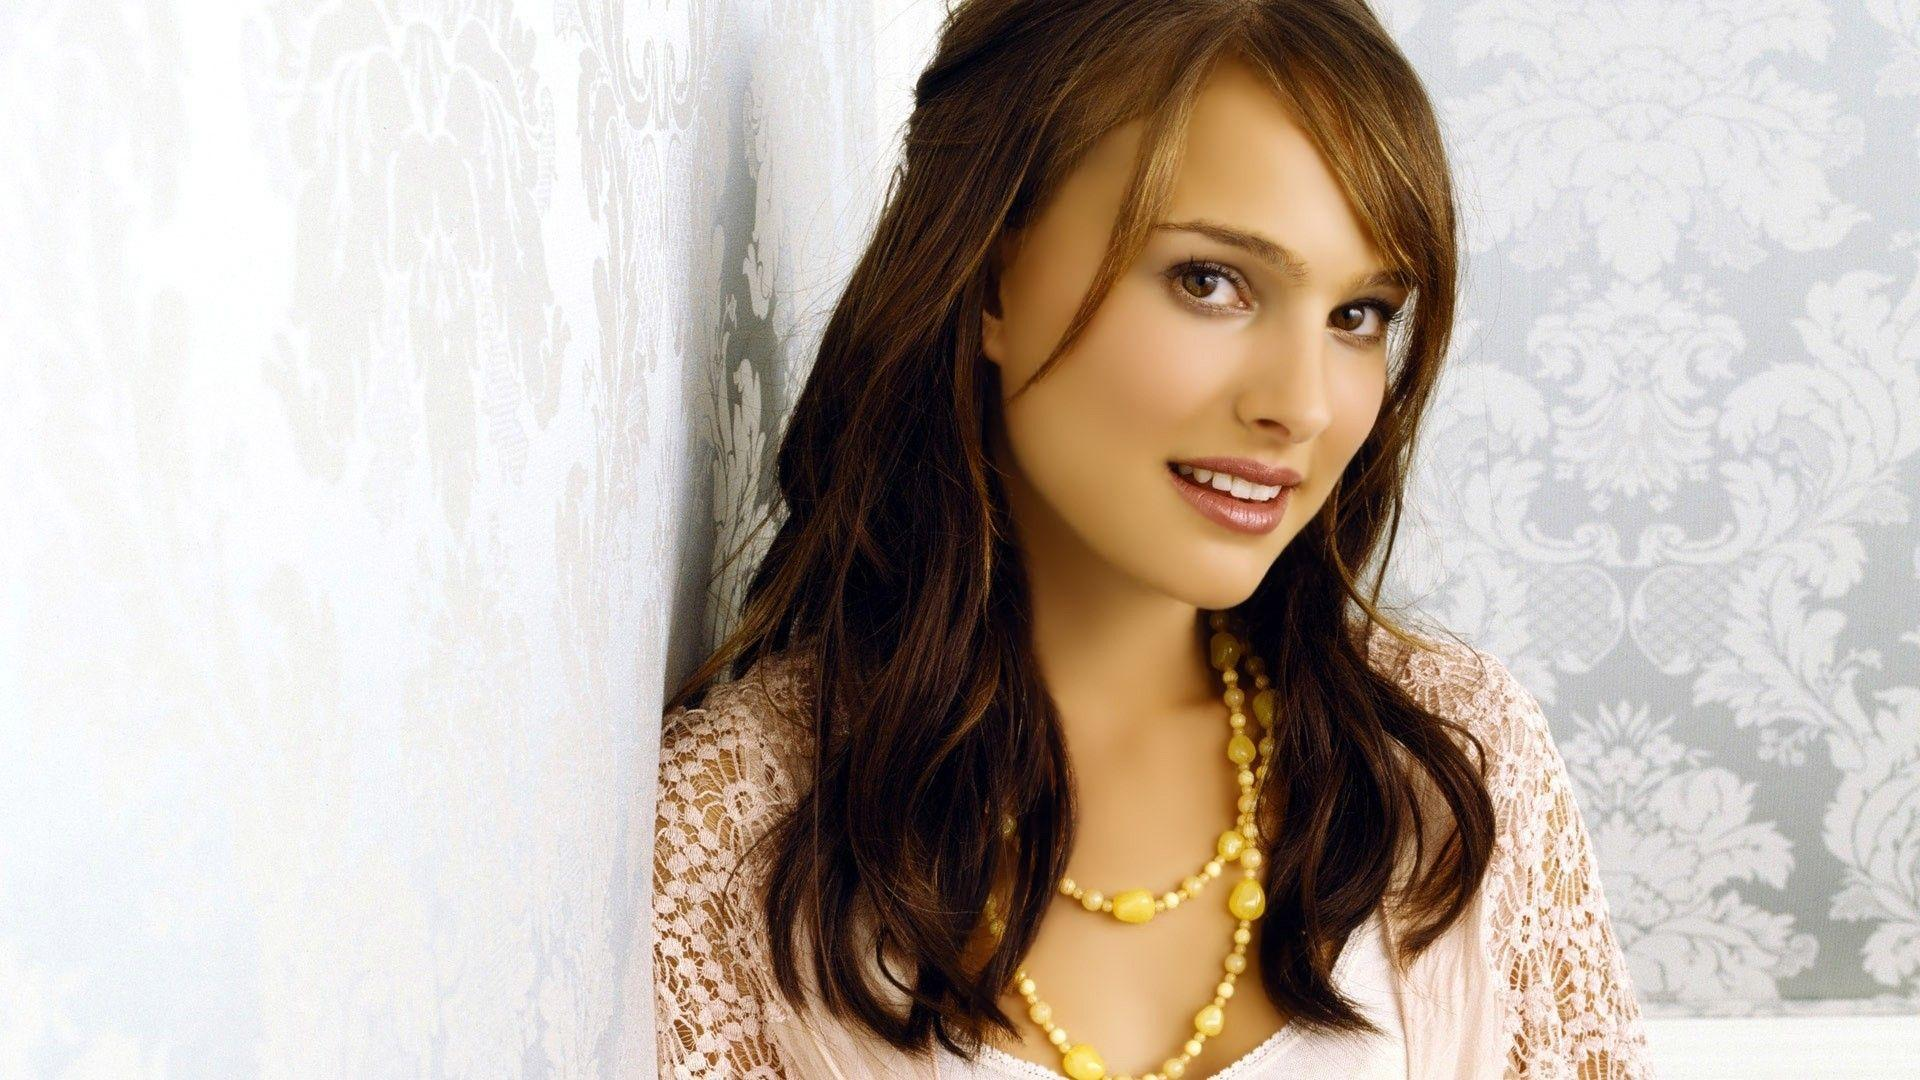 Natalie Portman Computer Wallpapers, Desktop Backgrounds 1920x1080 ...